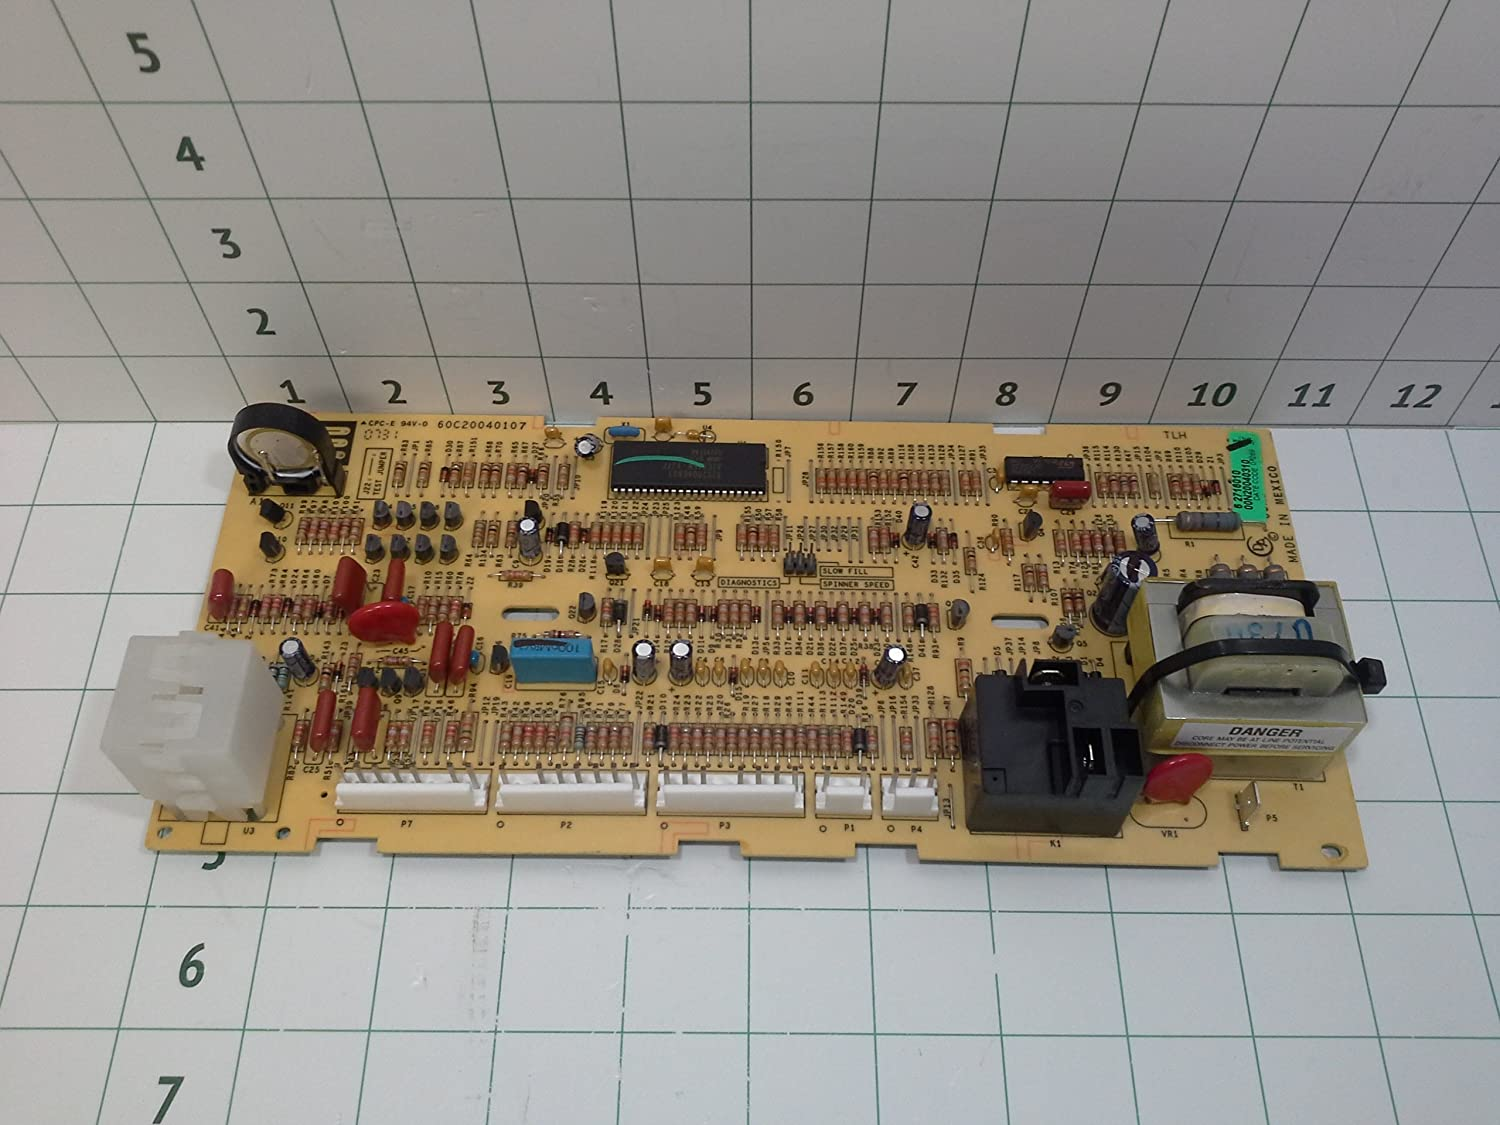 Whirlpool 22002988 Washing Machine Neptune Control Board Maytag Washer Panel Parts Model Mah4000aww Fits With Kitchenaid Jenn Air Amana Magic Chef Admiral Norge